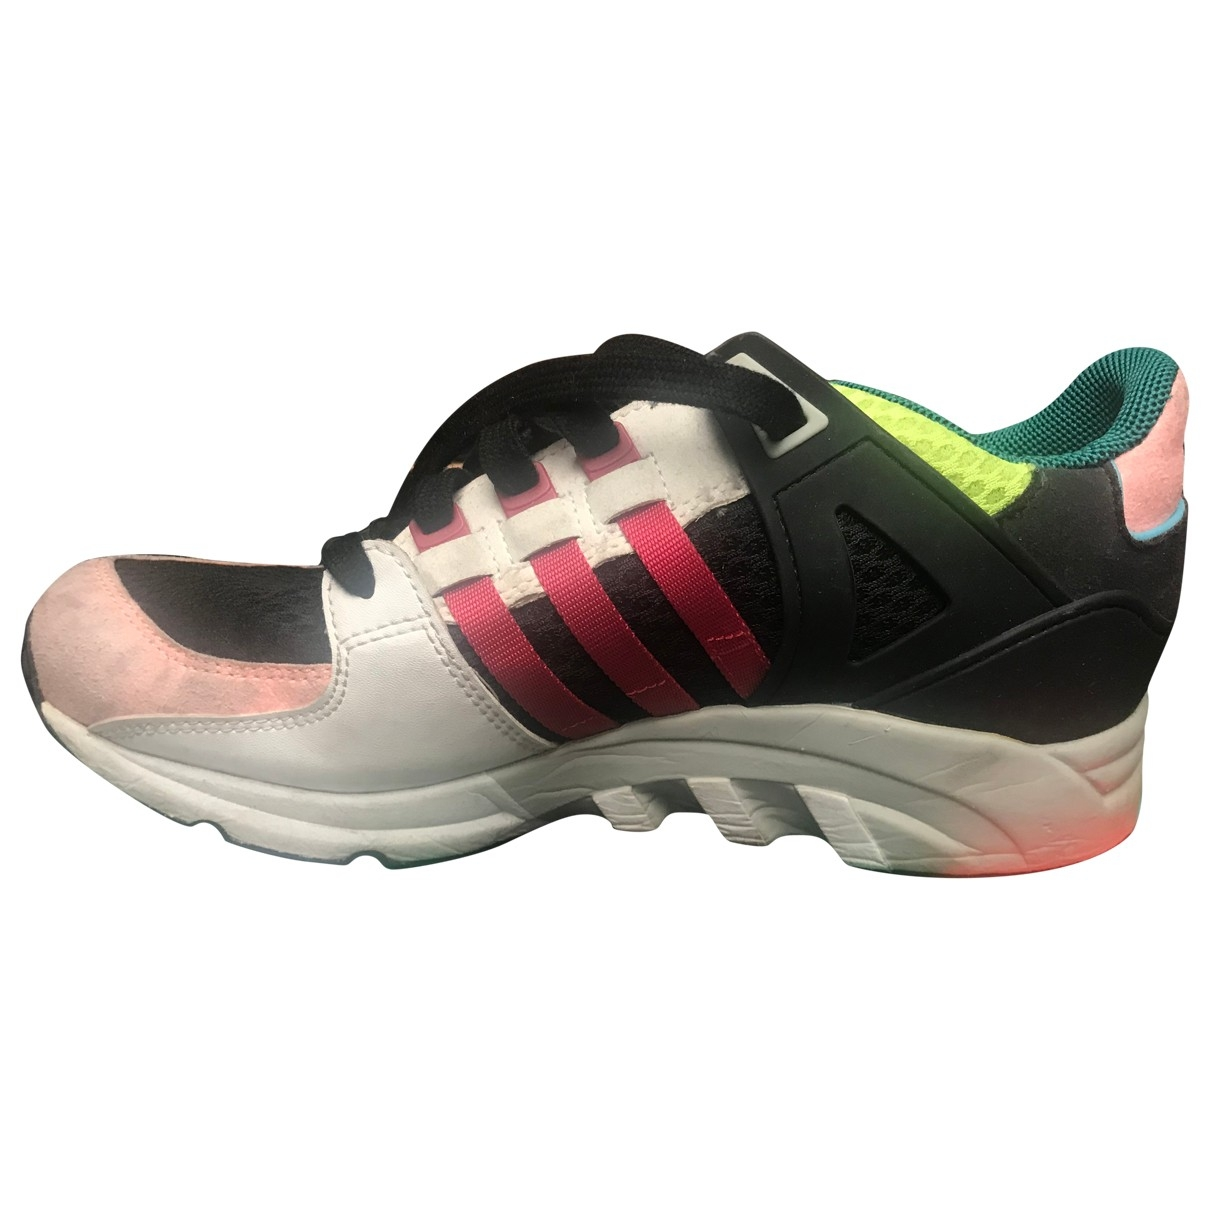 Adidas EQT Support Multicolour Cloth Trainers for Women 38.5 EU